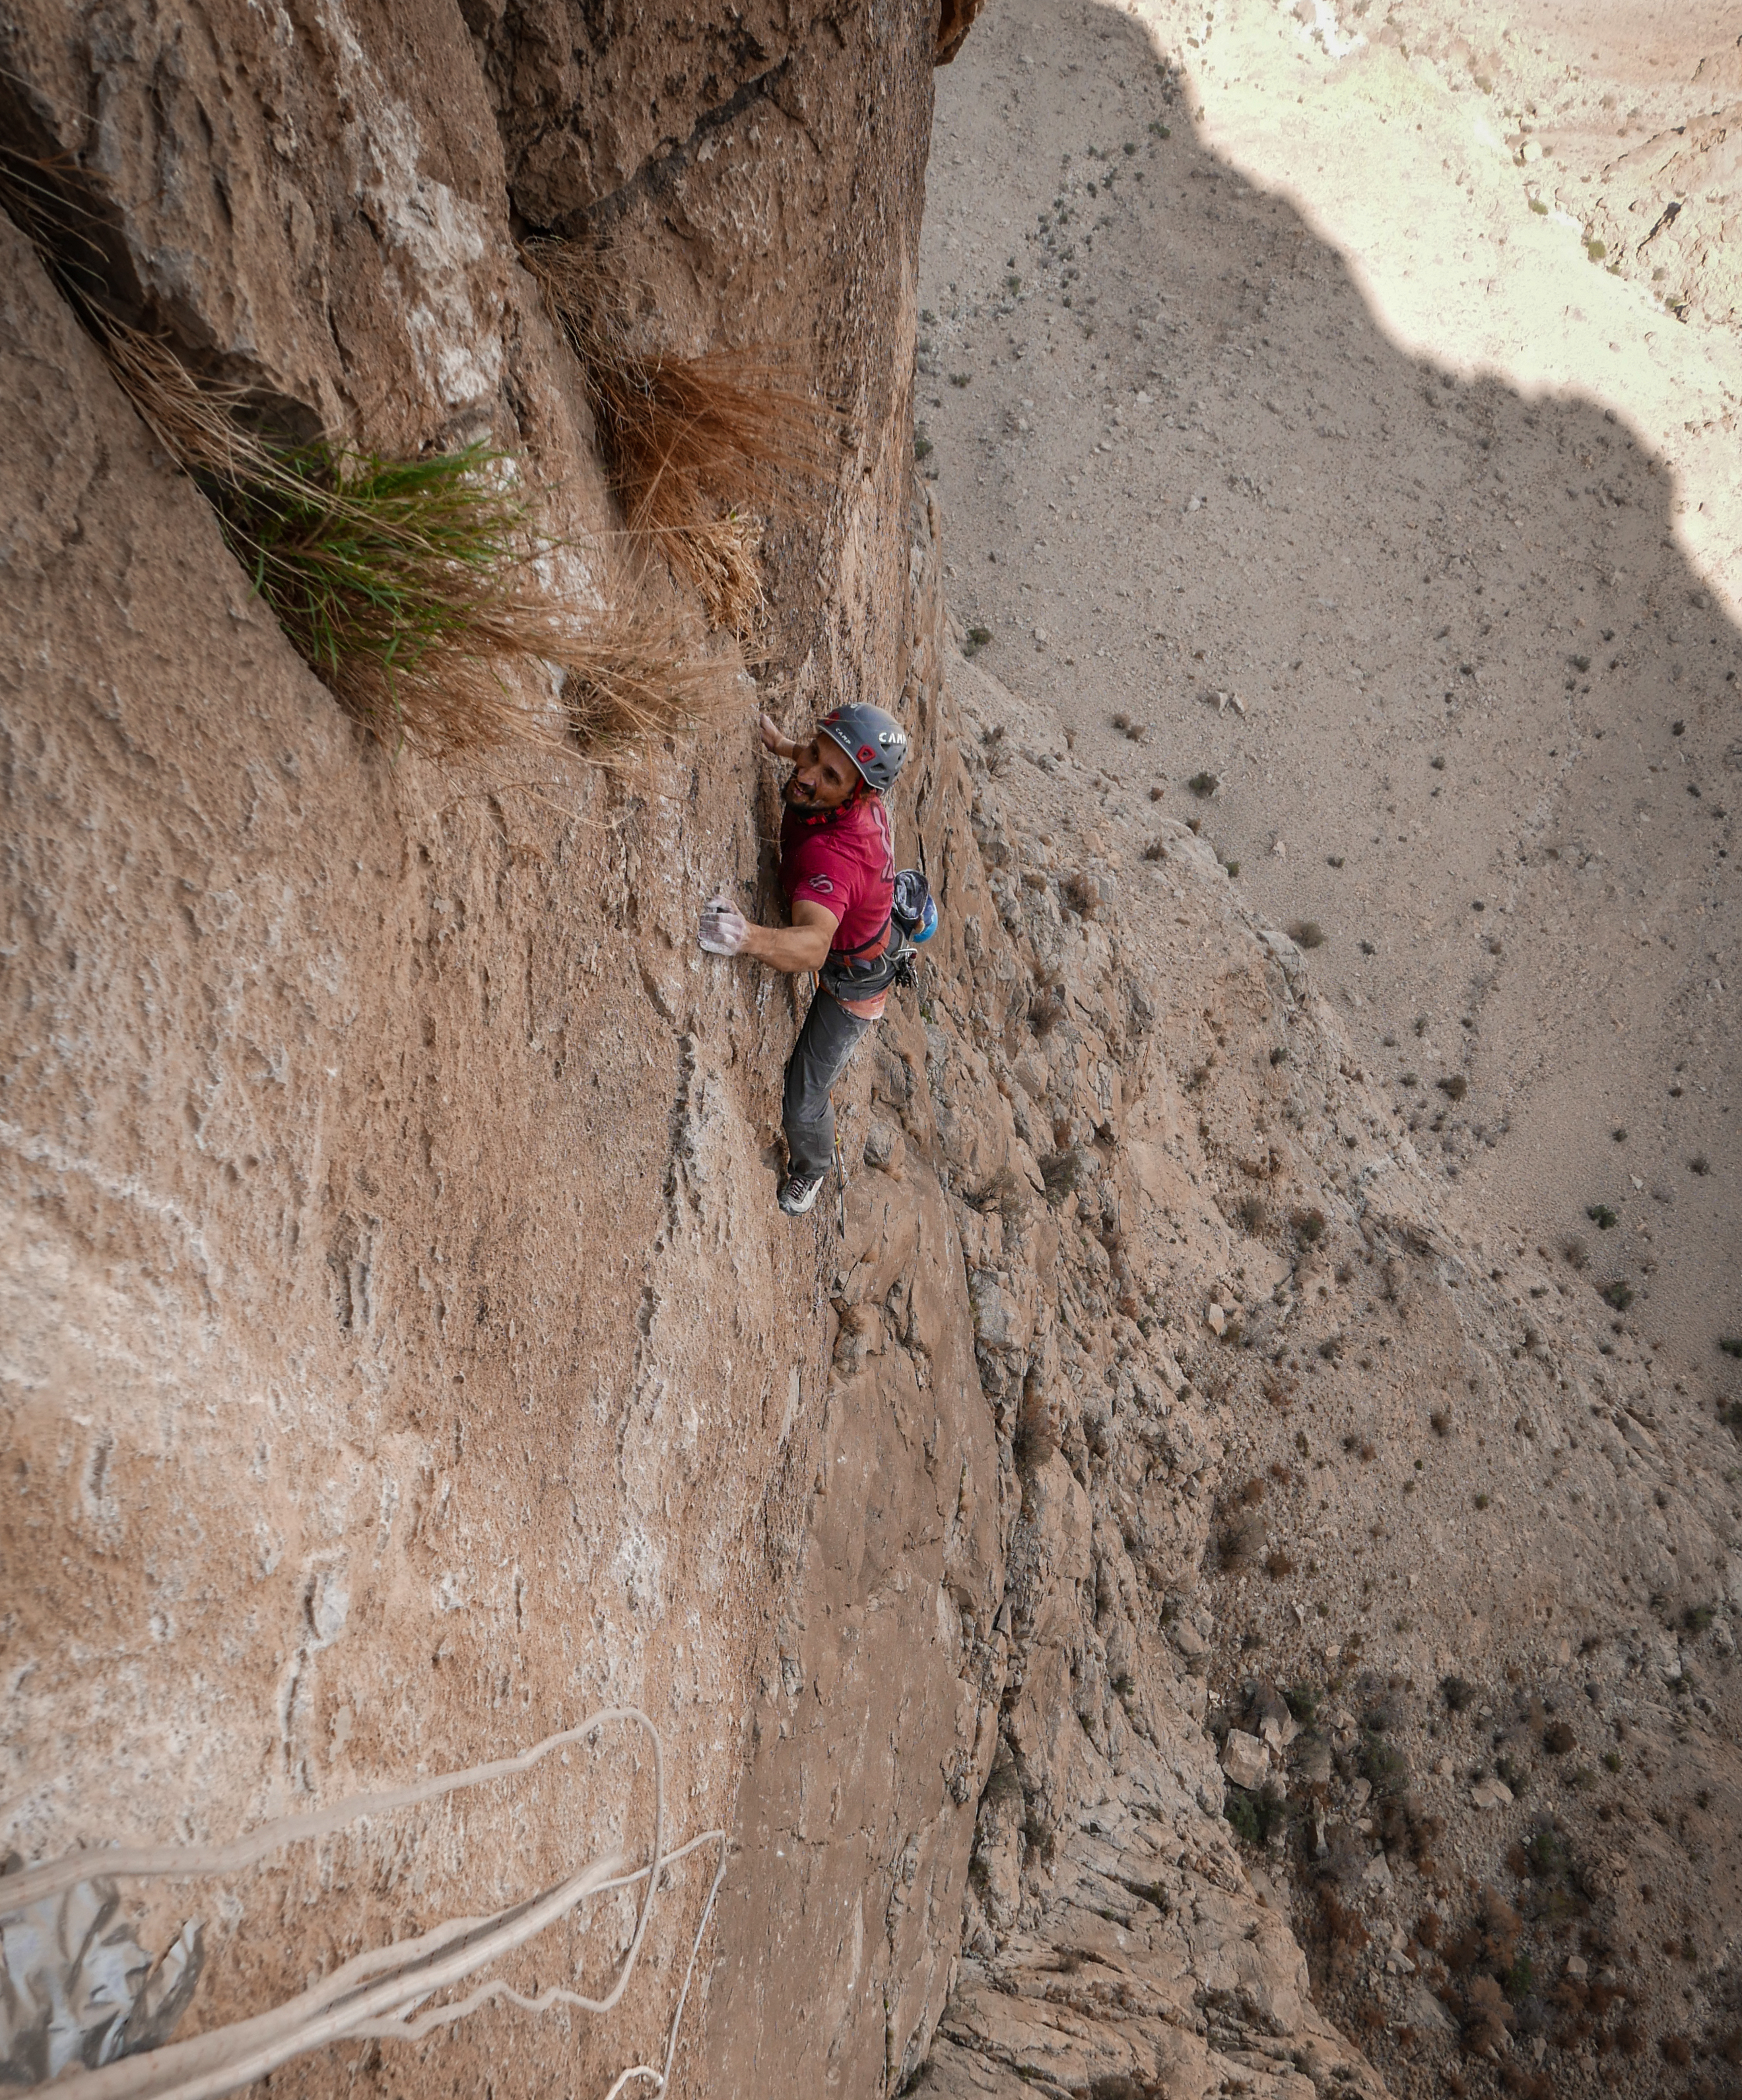 Simone Pedeferri attempting to redpoint the fourth and crux pitch (8a) of Vacanze (R)omane.